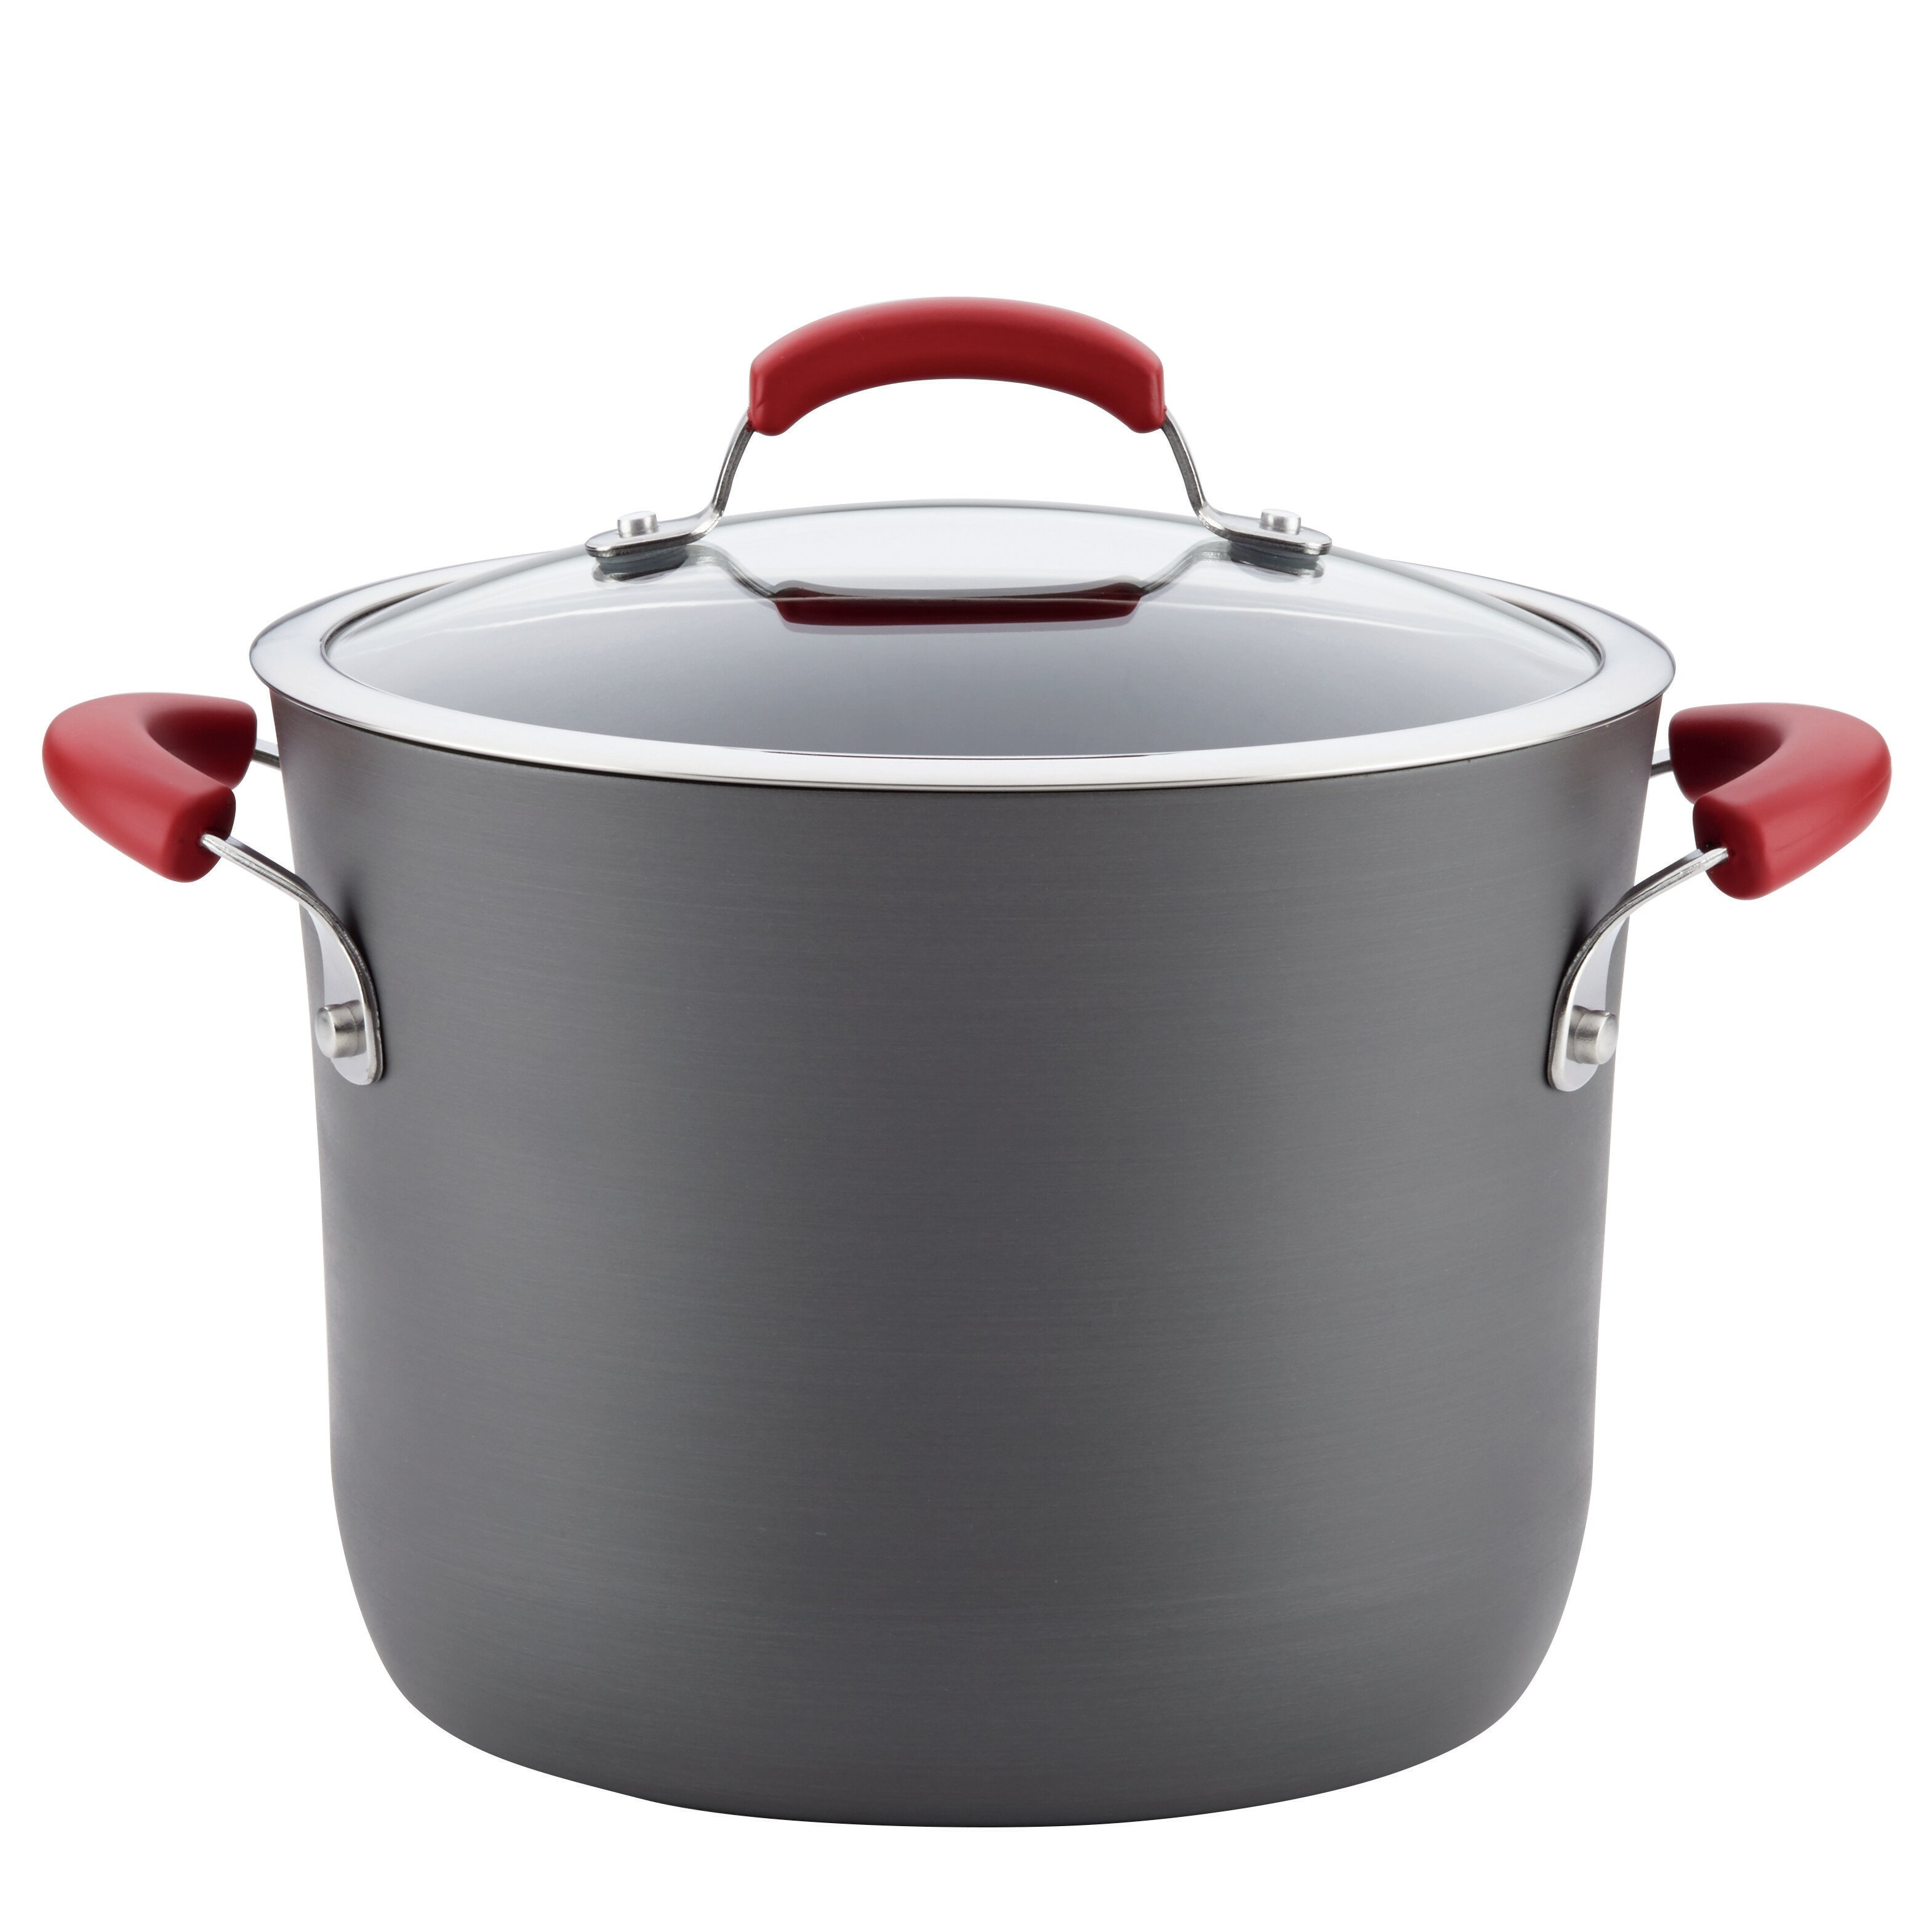 Rachael Ray 8 Qt Non Stick Covered Hard Anodized Aluminum Stock Pot Reviews